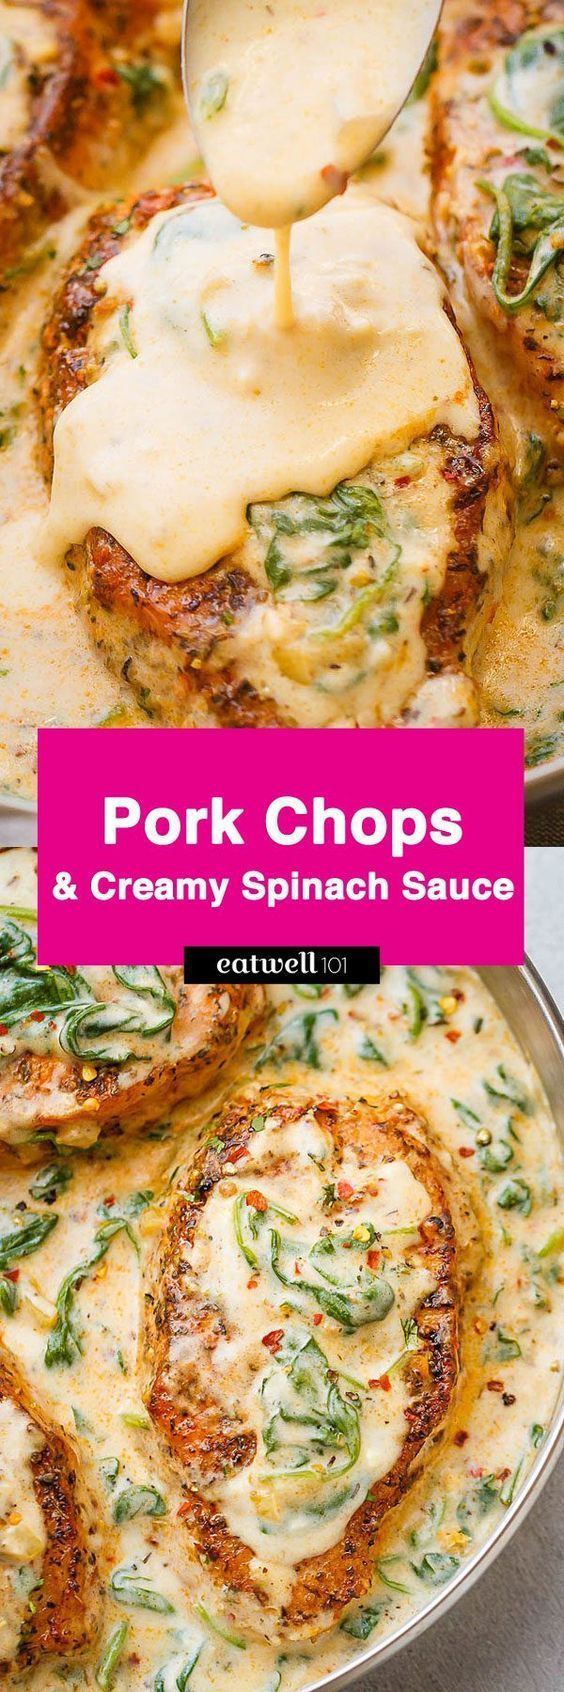 Boneless pork chops with garlic butter and spinach sauce …